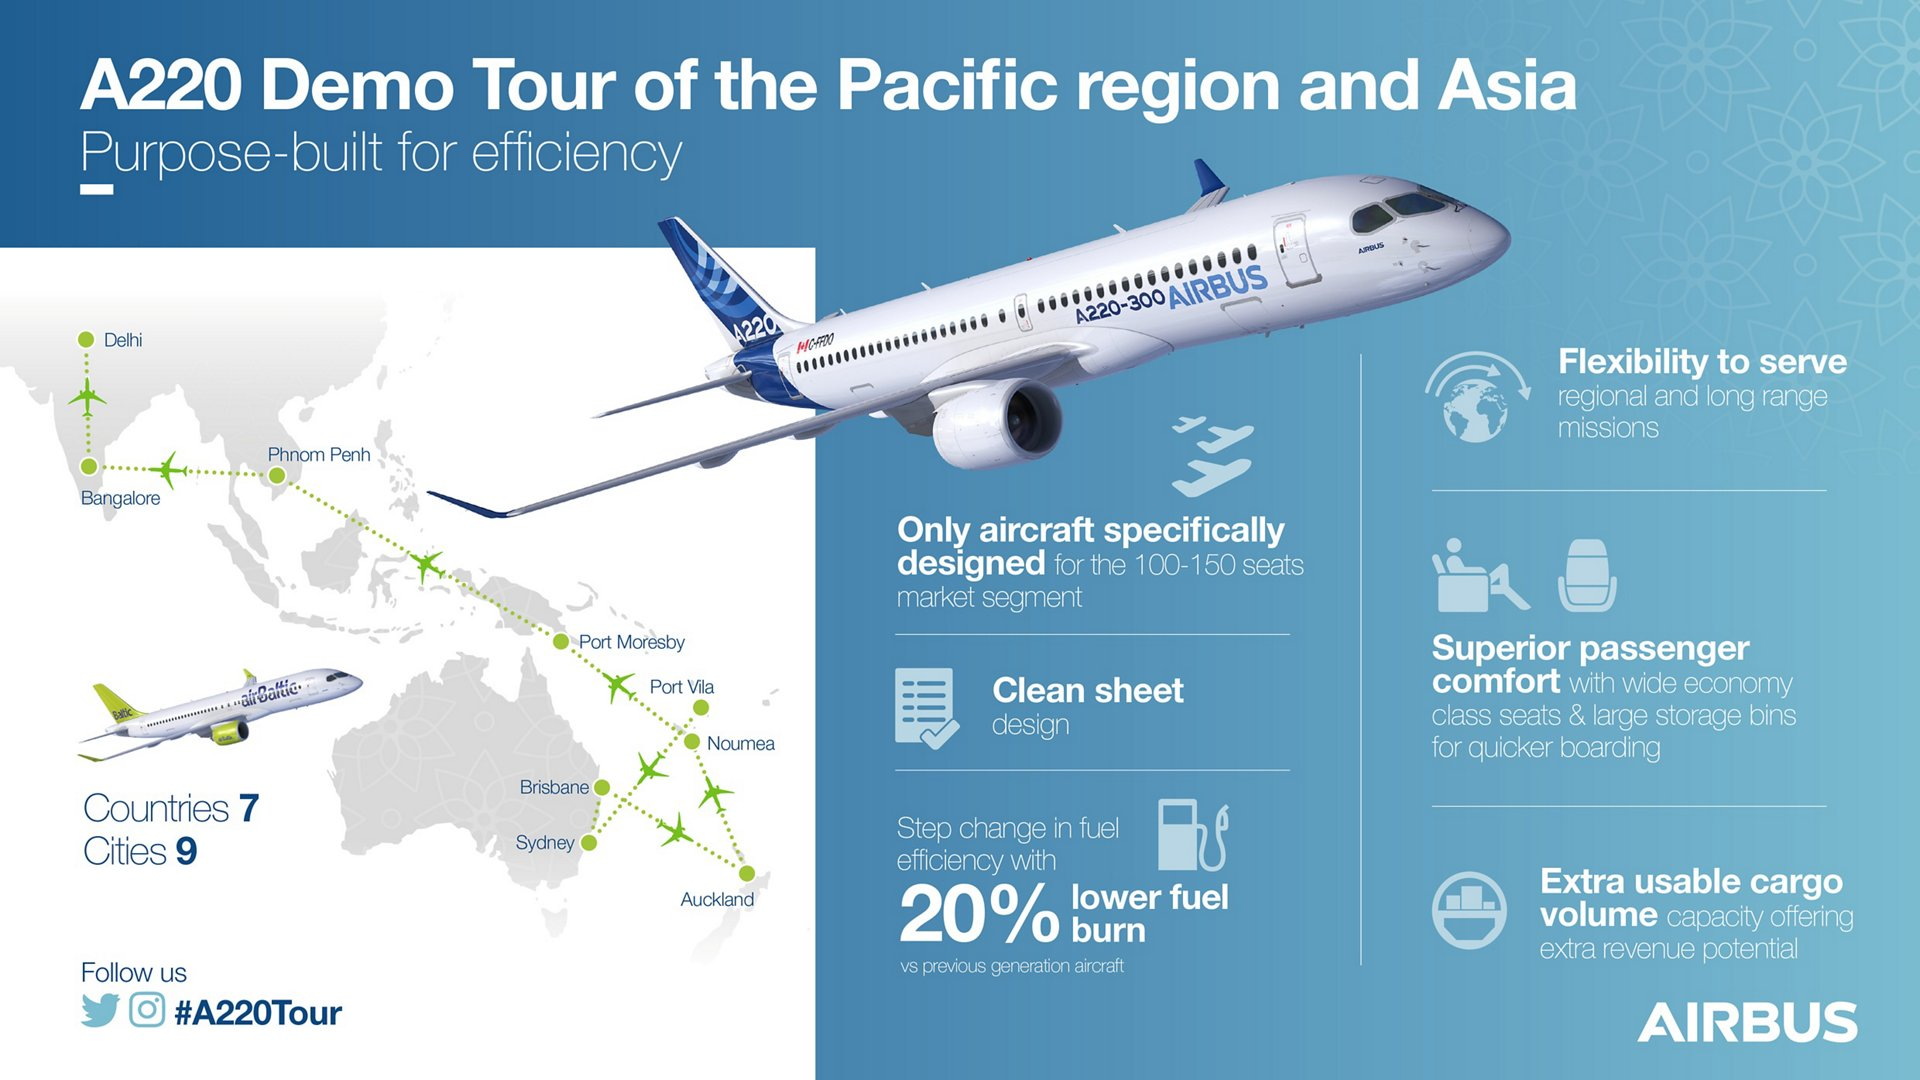 Airbus' extensive tour of the Pacific region to showcase its A220 will include visits to nine destinations in seven countries